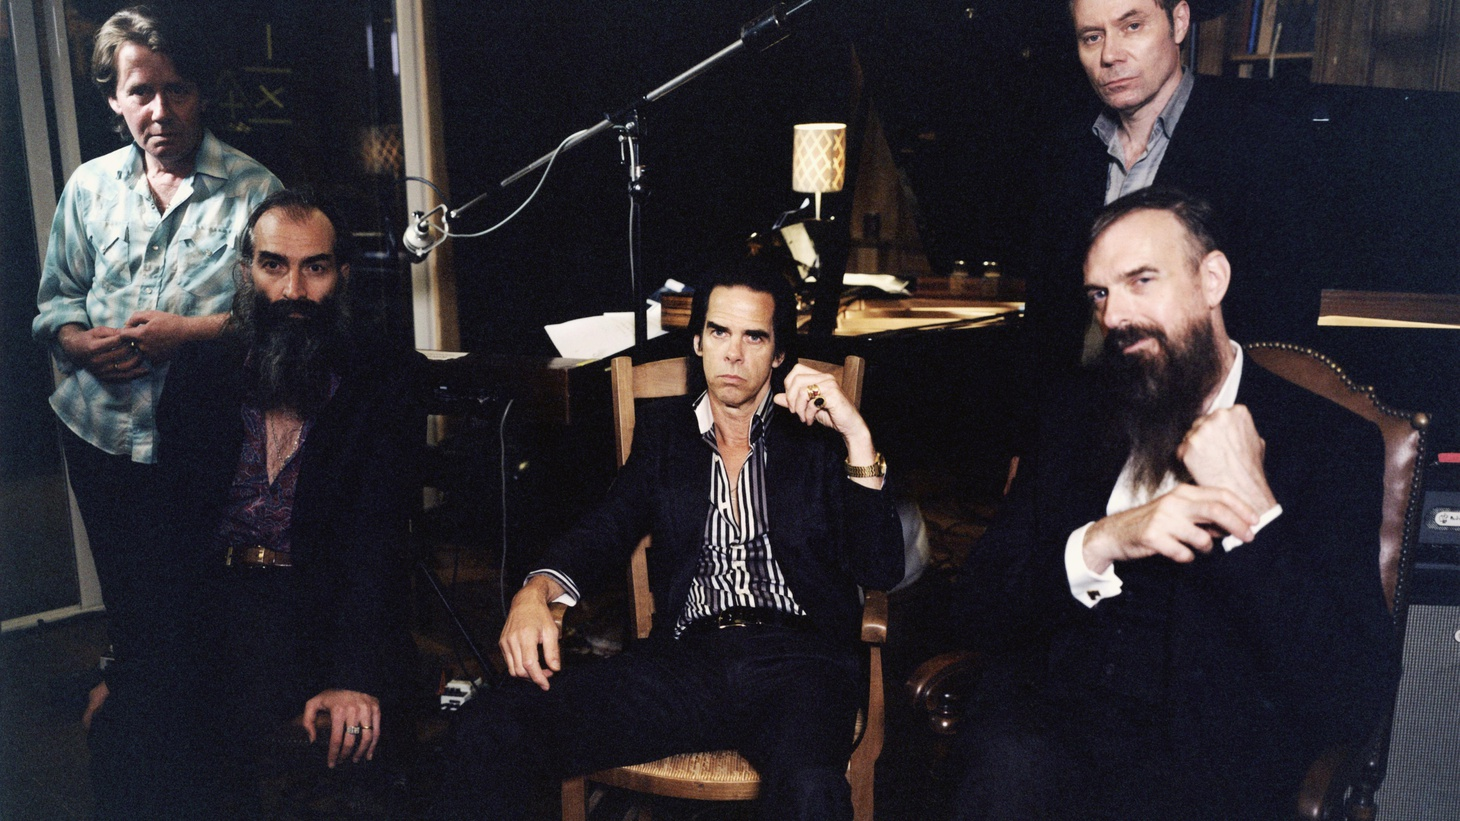 Literary, brooding songster Nick Cave comes in with his band for a session on Morning Becomes Eclectic at 11:15am.Click HERE to watch!